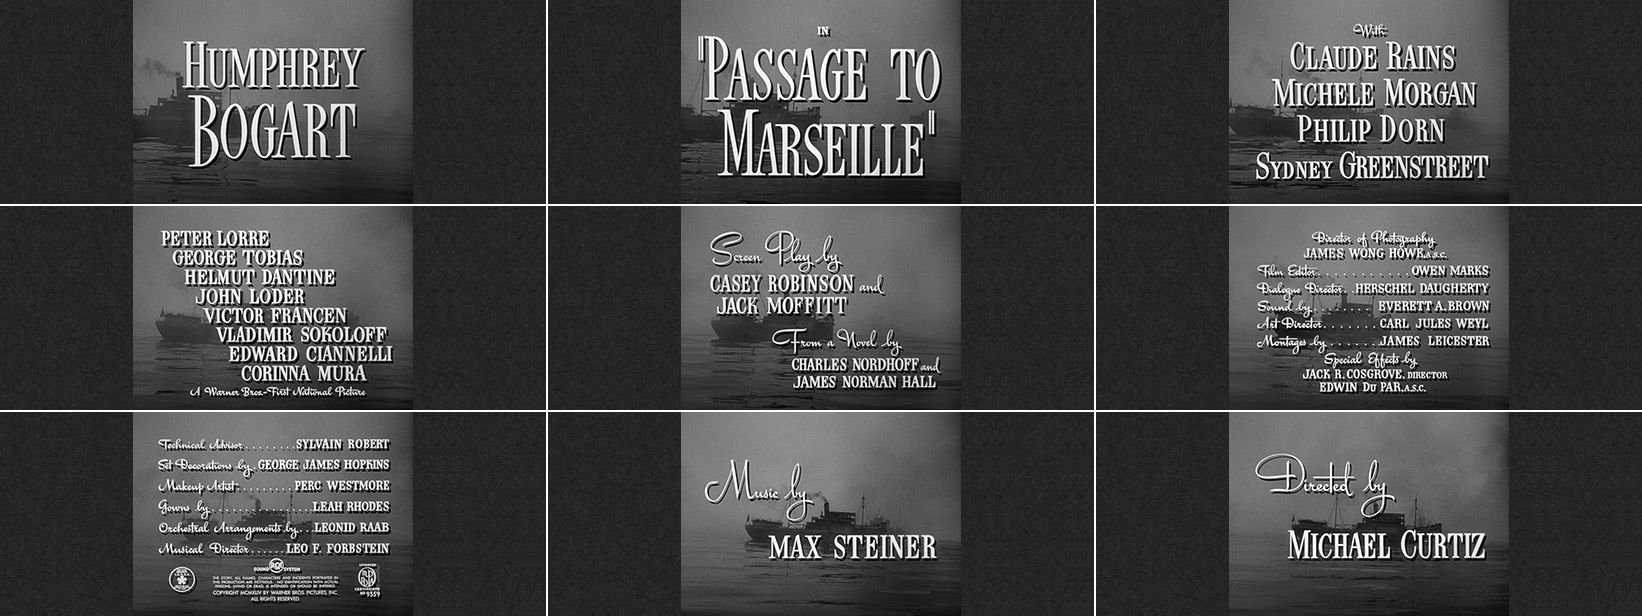 Michael Curtiz: Passage to Marseille (1944) title sequence